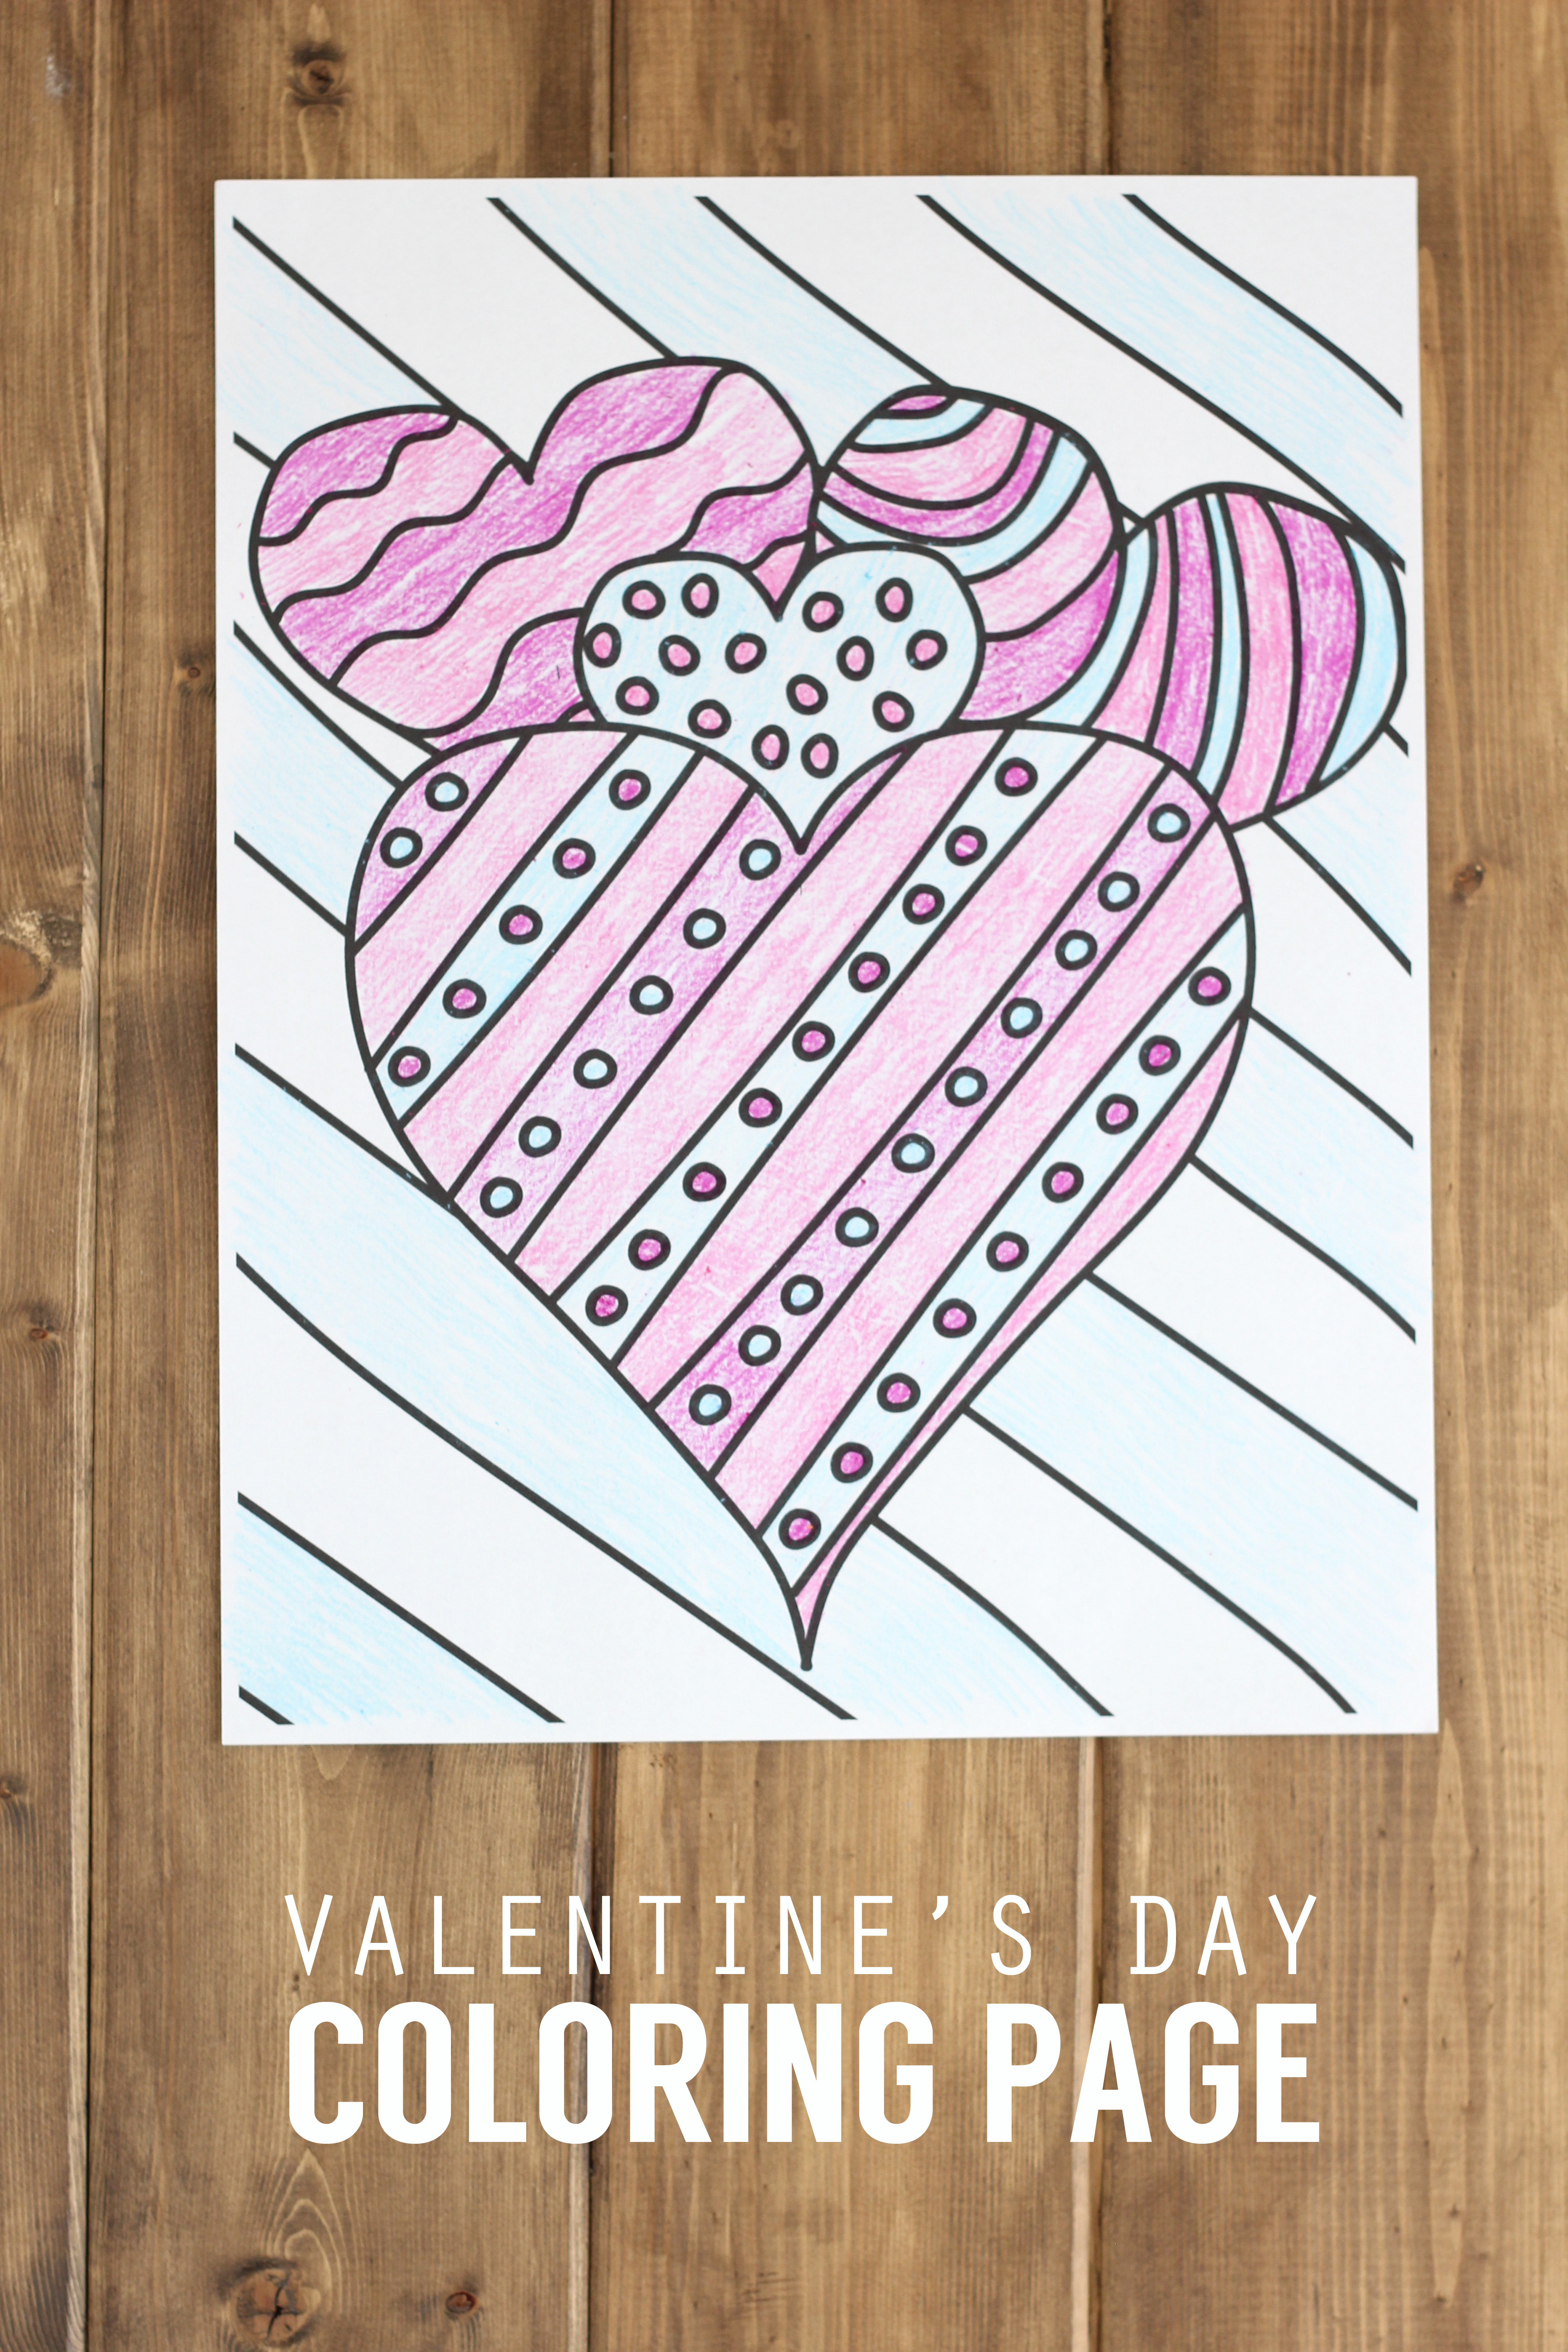 Holidays: Valentine's Day Coloring Page! A simple little drawing to color in for the holiday. via www.thirtyhandmadedays.com